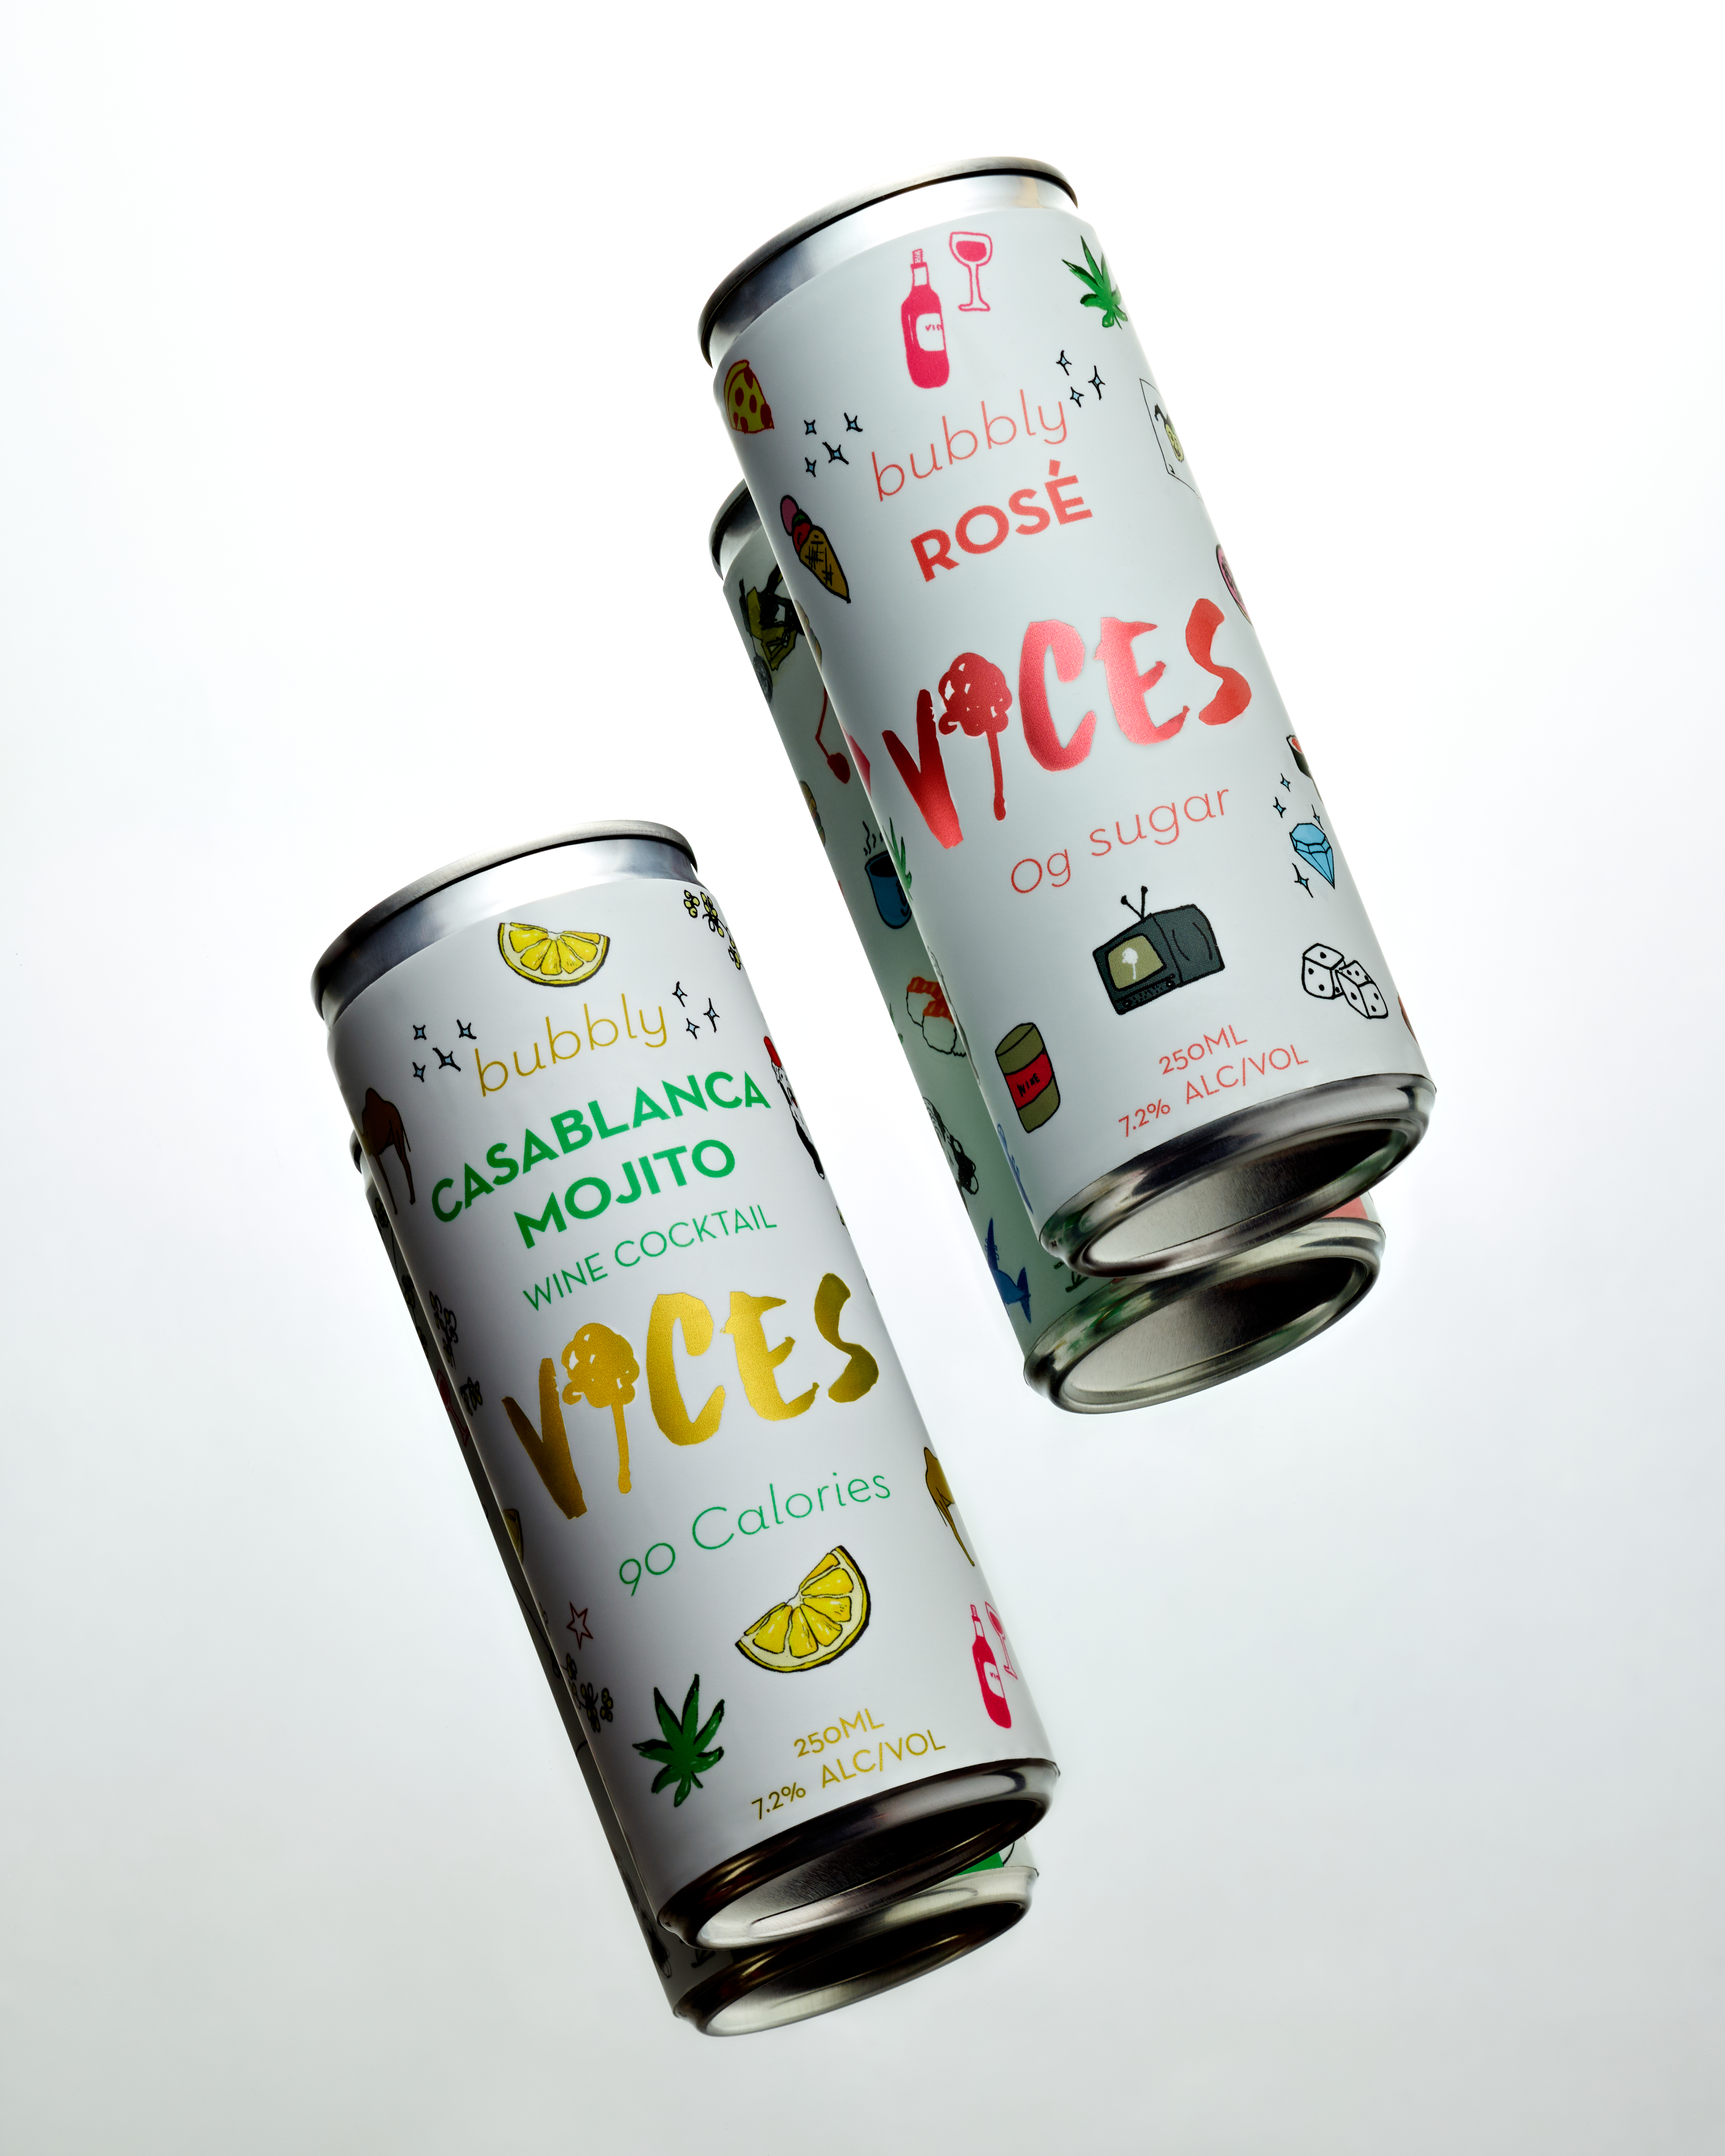 The Vice Wine releases a duo of Luxury Napa Valley Canned Wines